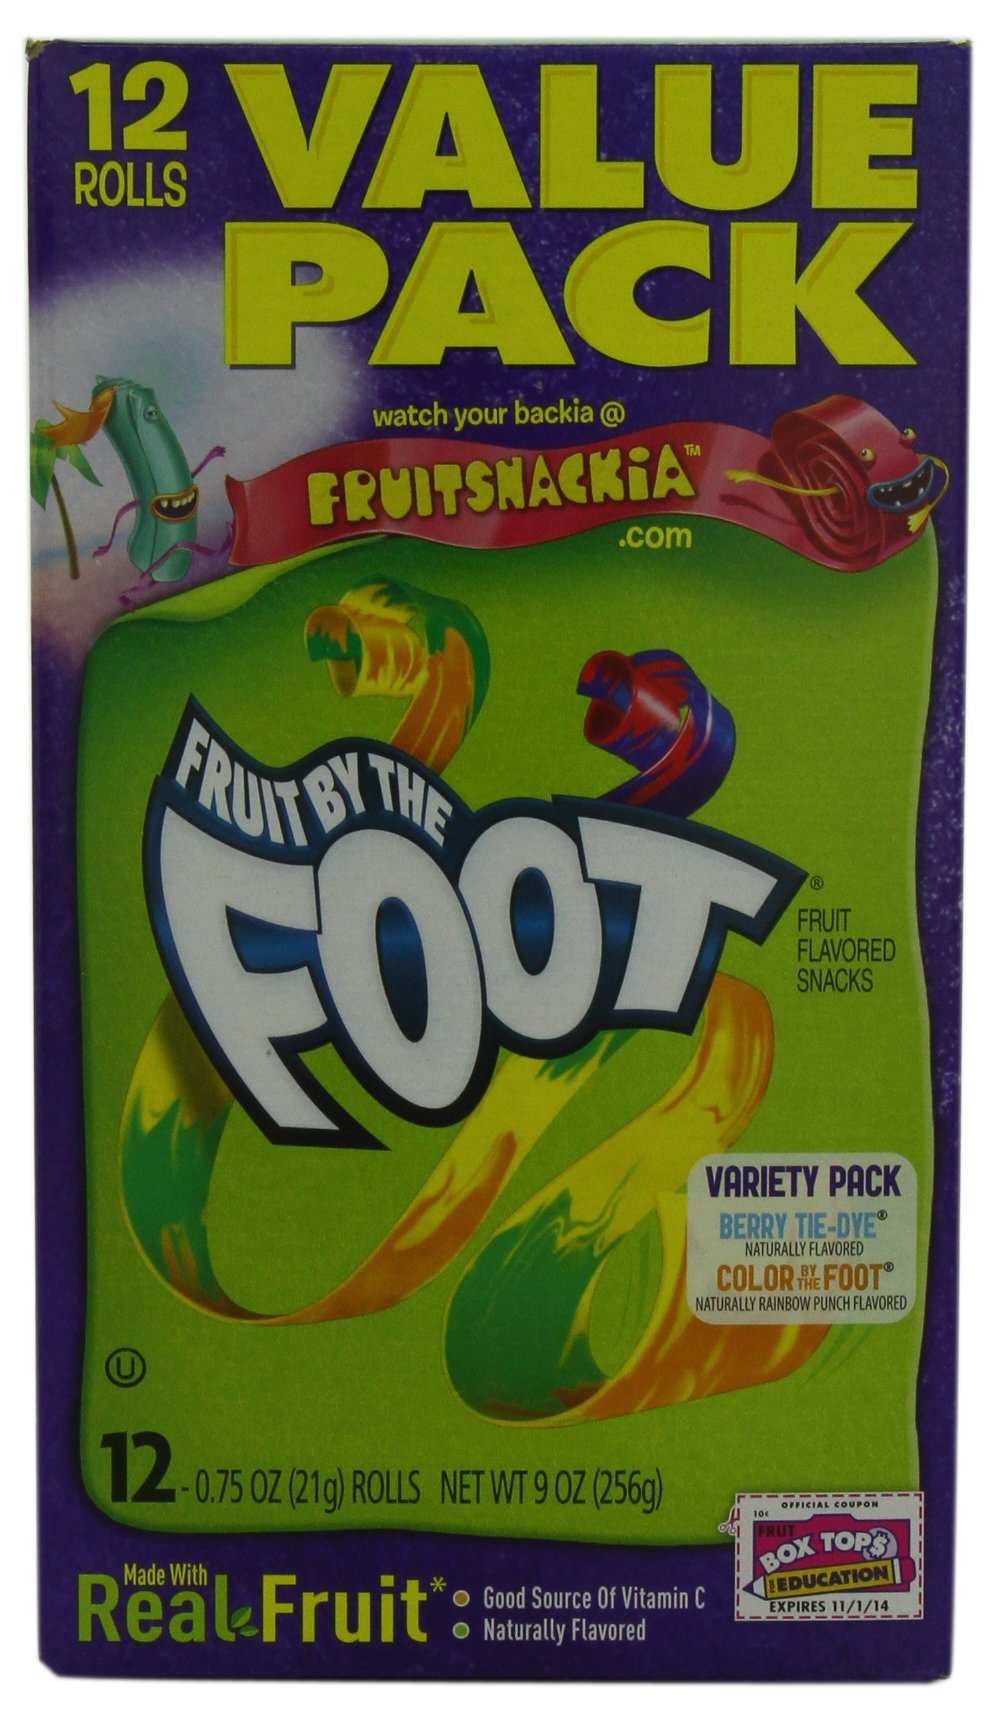 Betty Crocker Fruit Snacks, Fruit by the Foot, Variety Snack Pack, 12 Rolls, 0.75 oz Each (Pack of 6) by Fruit by the Foot (Image #1)